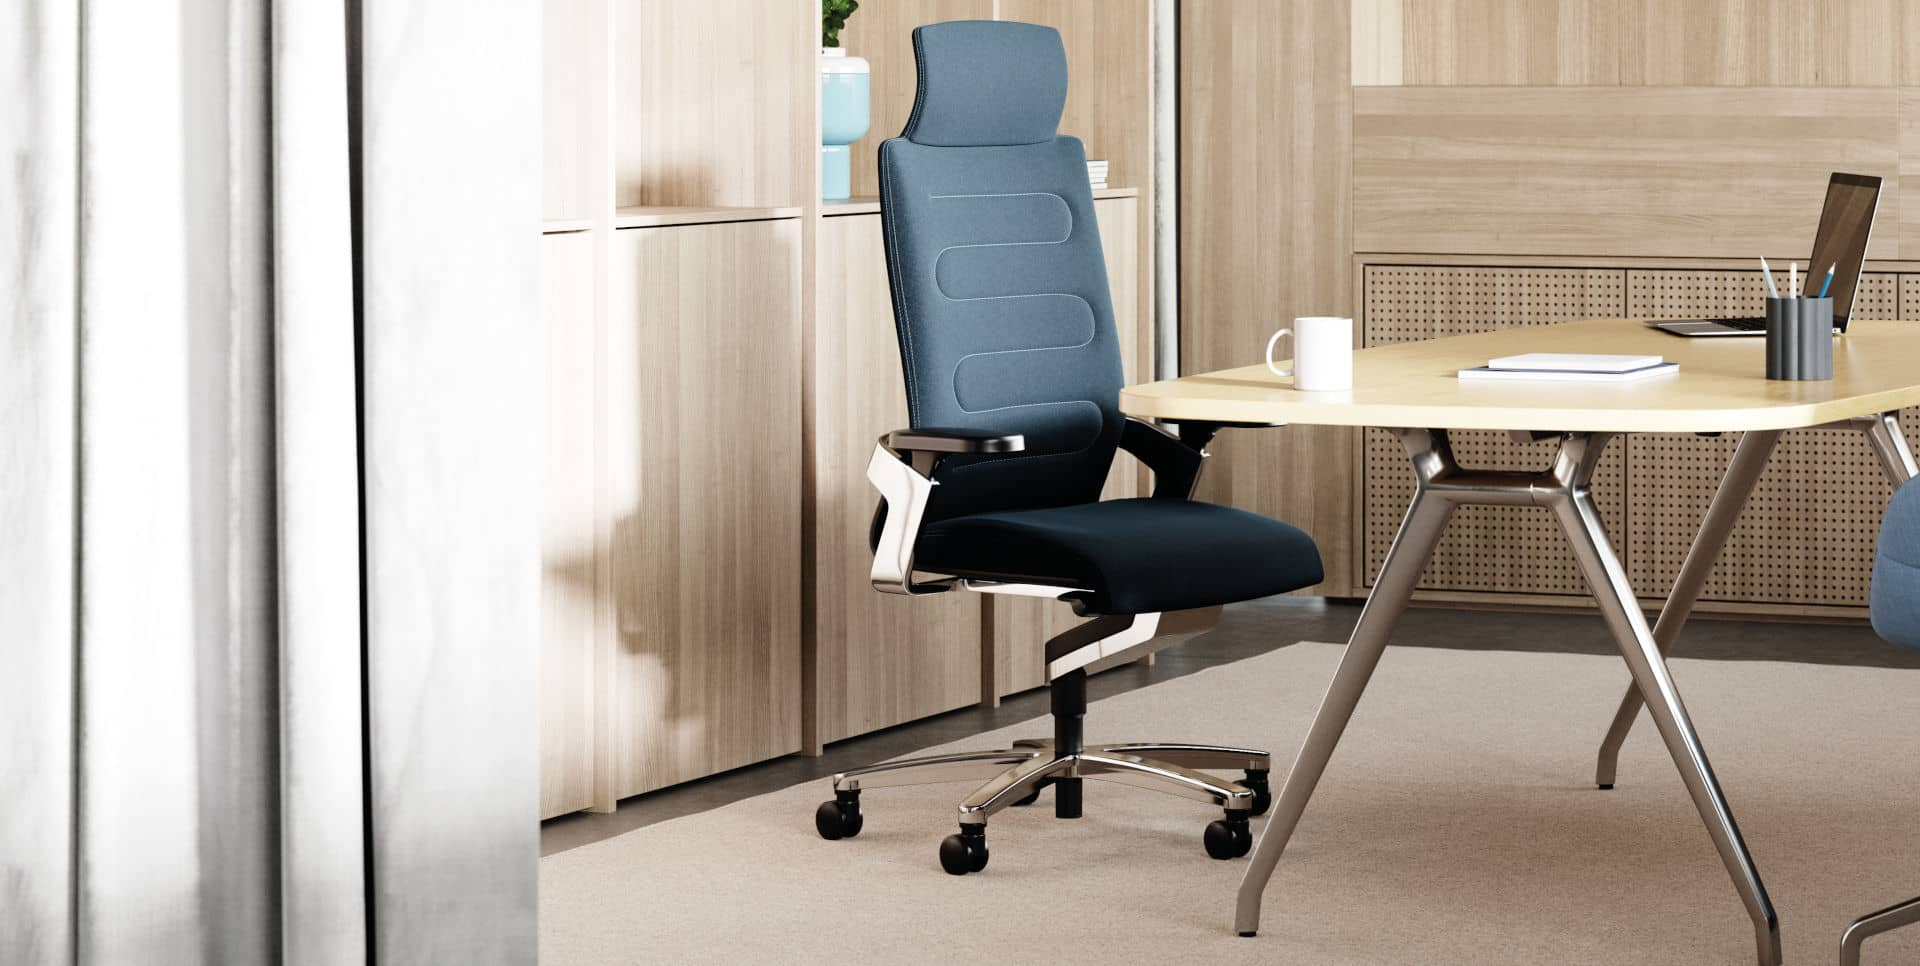 Ergonomic Office Chair On Task And Conference Chair